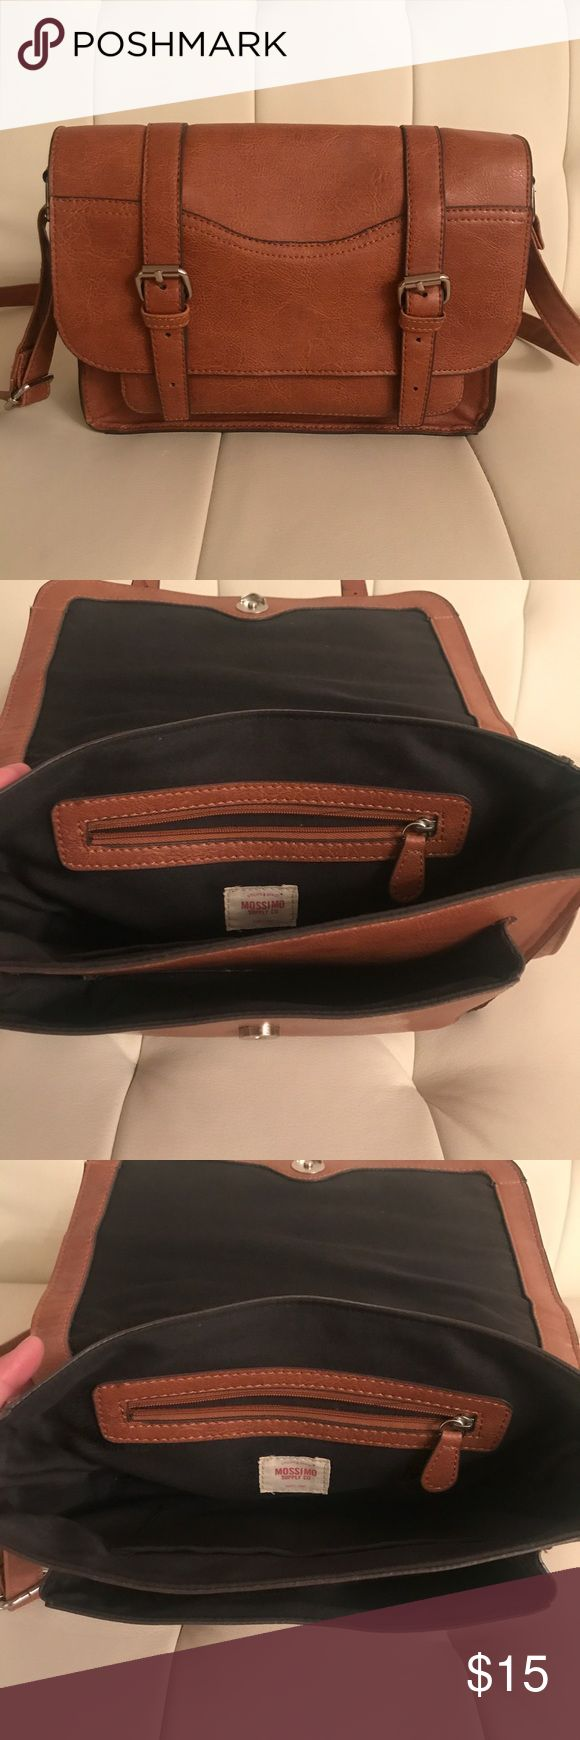 Mossimo Brown Satchel Great condition! Brown Mossimo satchel Mossimo Supply Co Bags Satchels